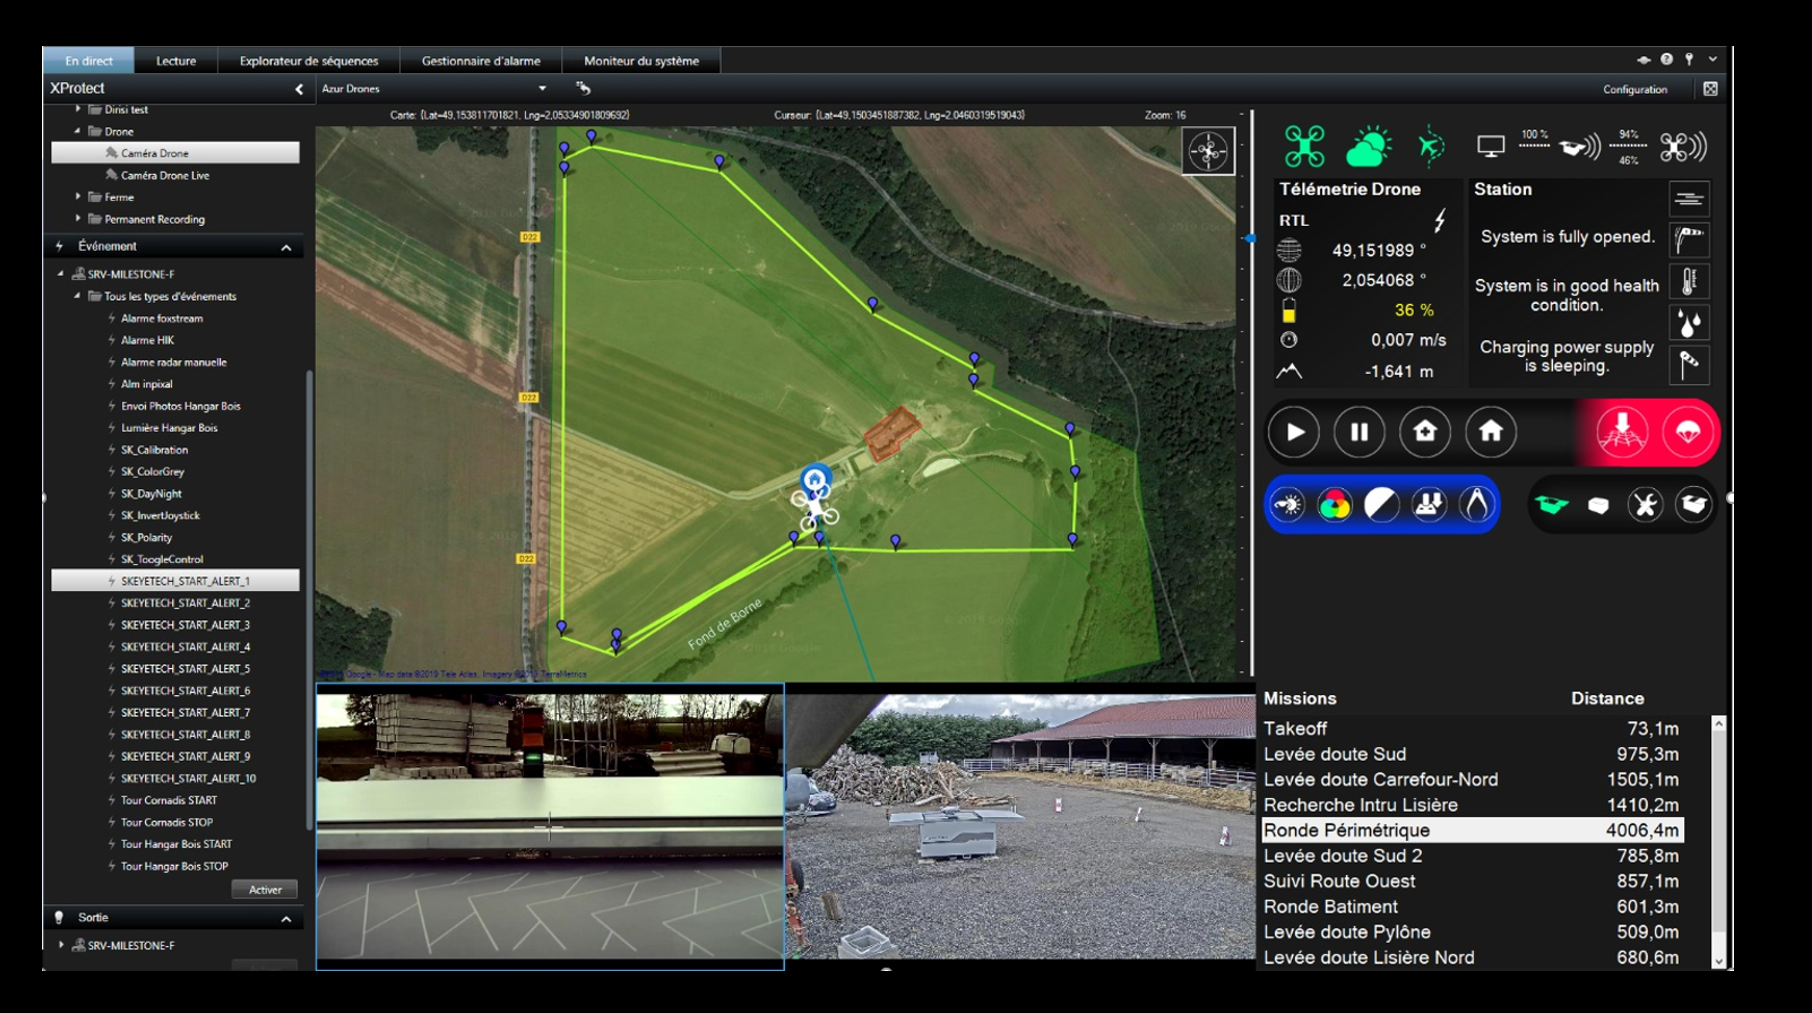 Skeyetech drone control software in Milestone Video Management System